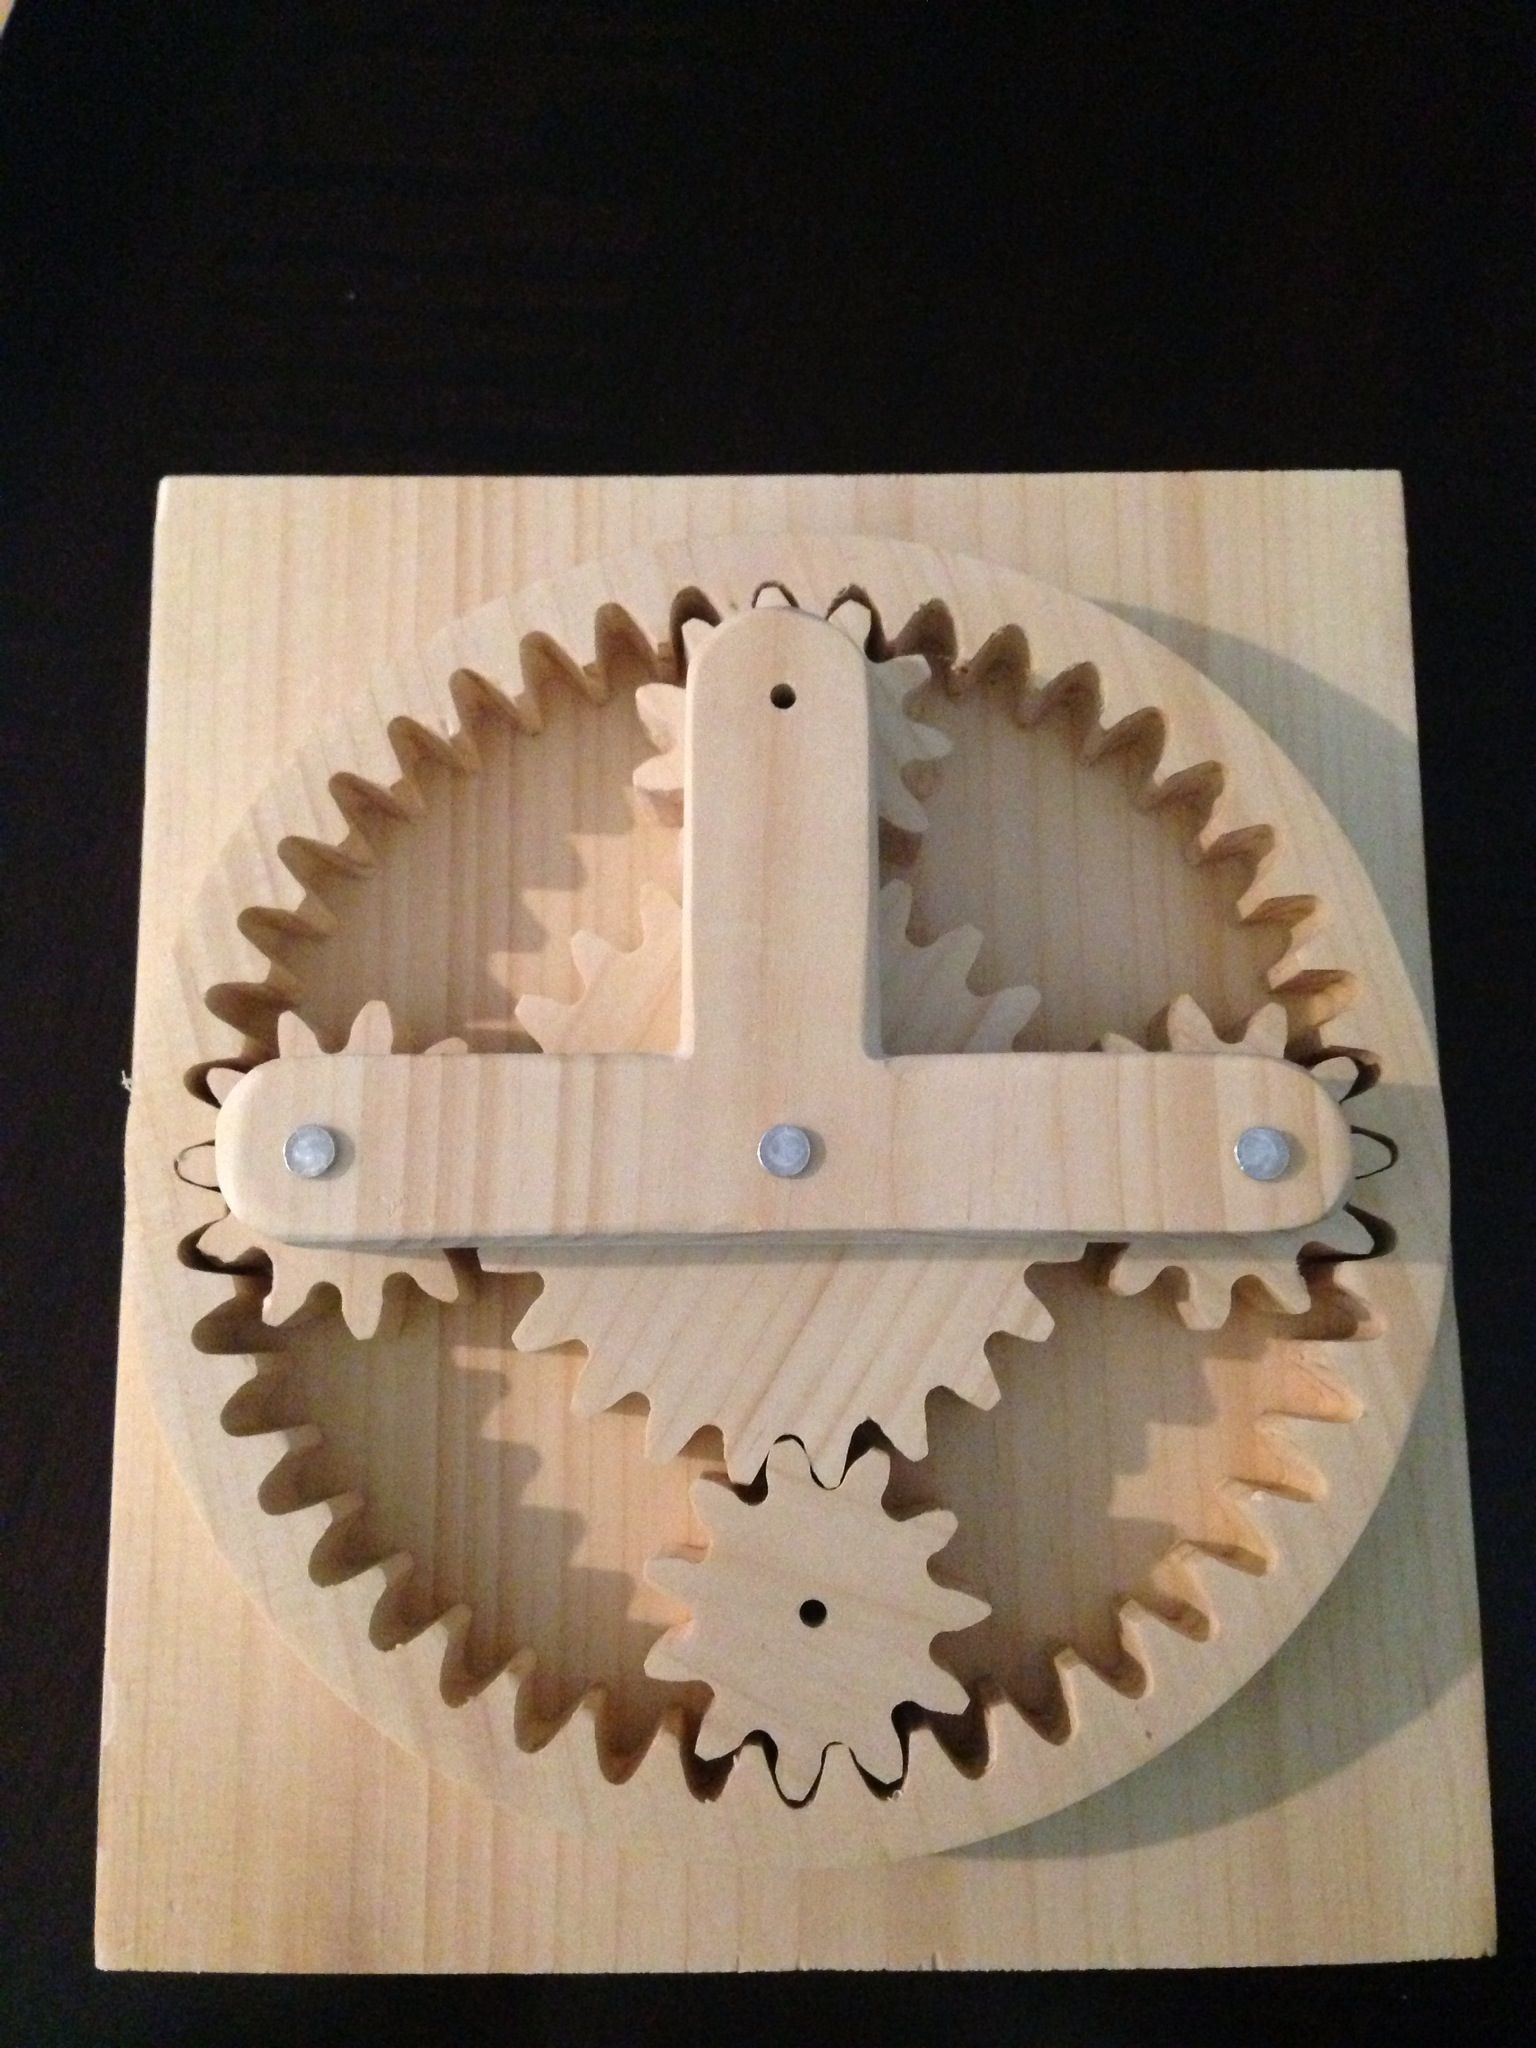 Functional Gears Cnc Cnc And More Wooden Gear